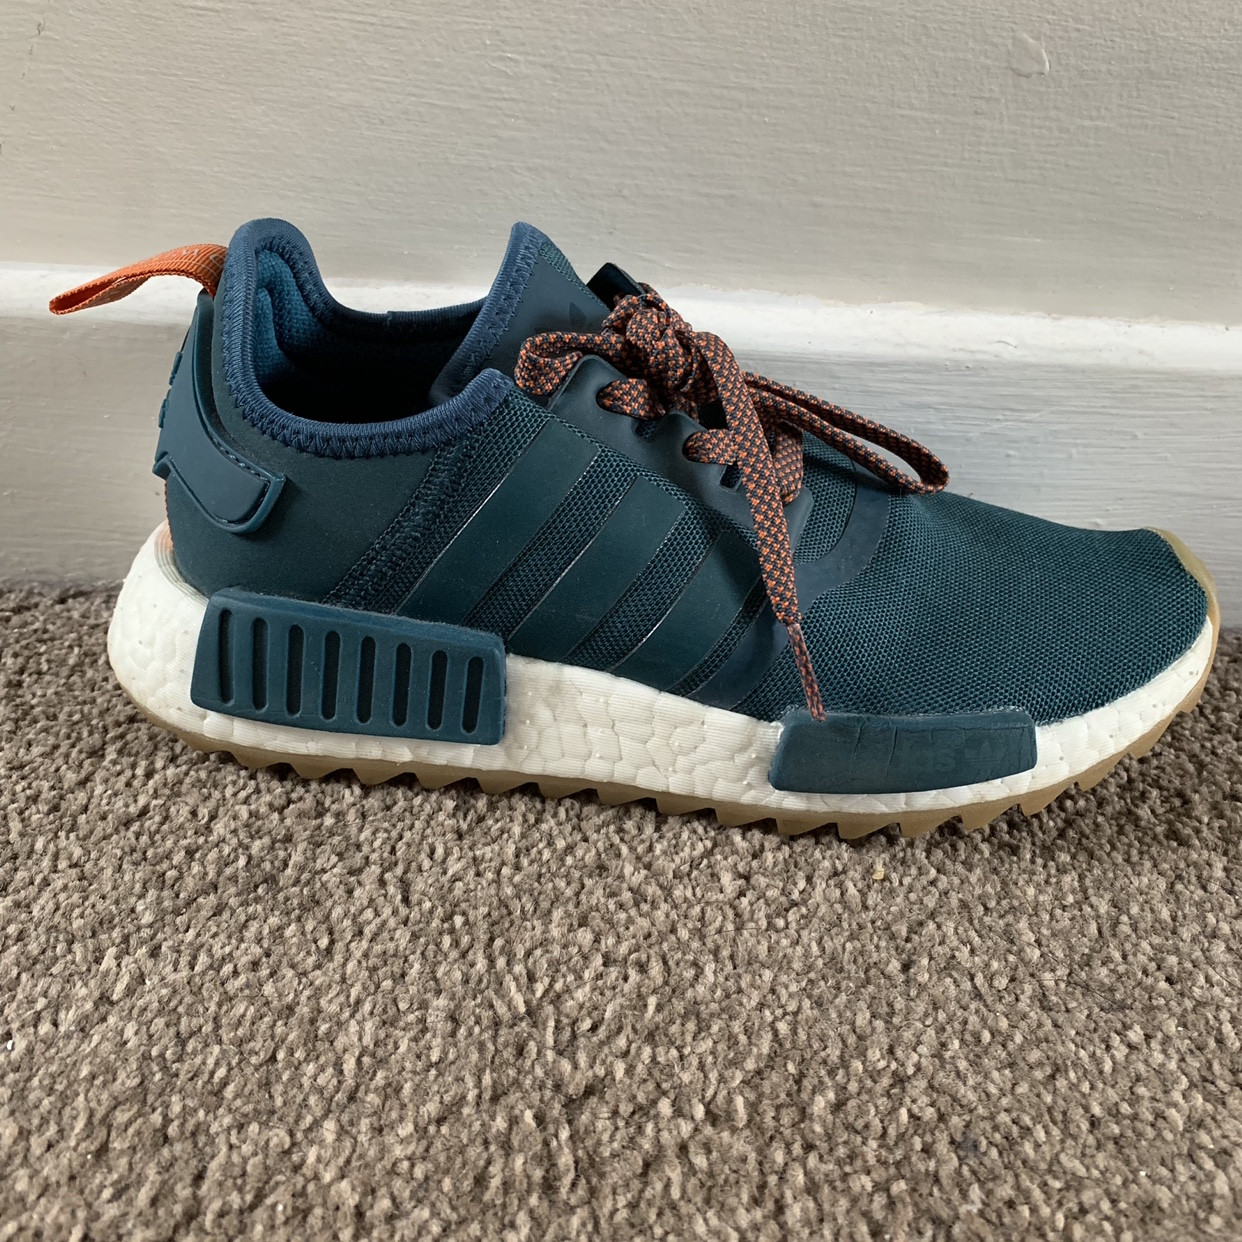 Adidas NMD R1 Trail Green. Size 5. Open to offers Depop